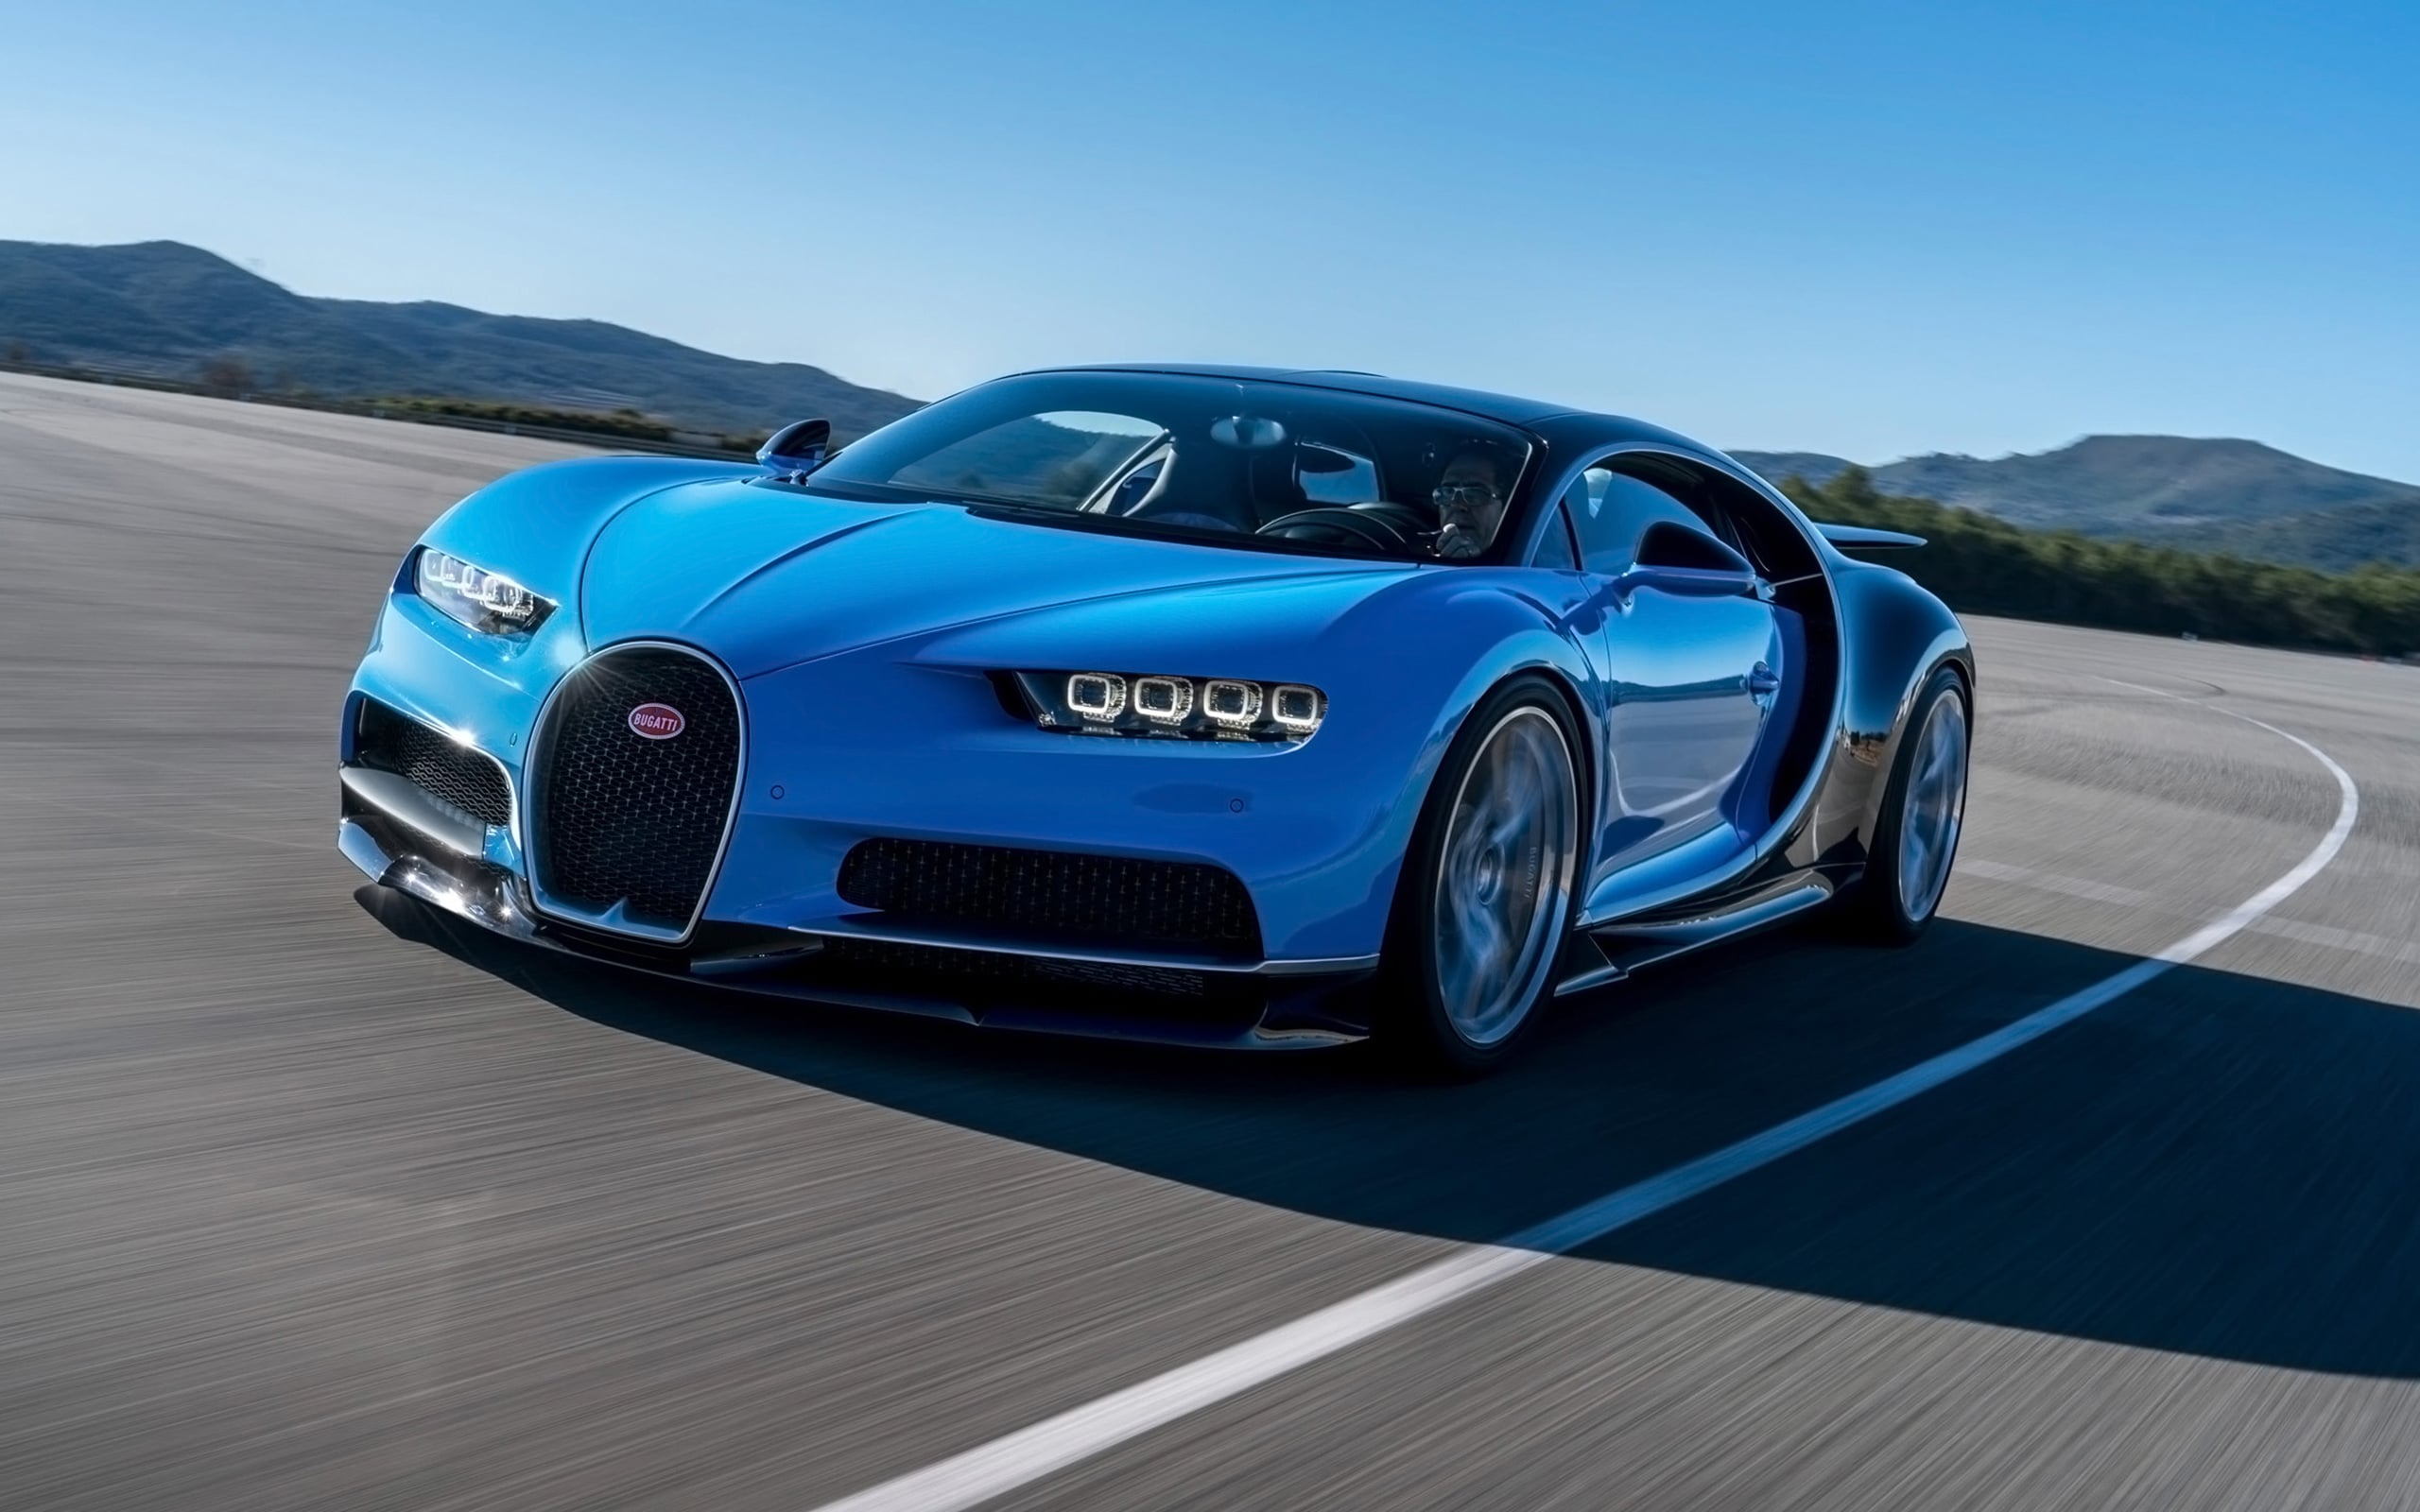 2017 Bugatti Chiron blue 4k wallpaper download